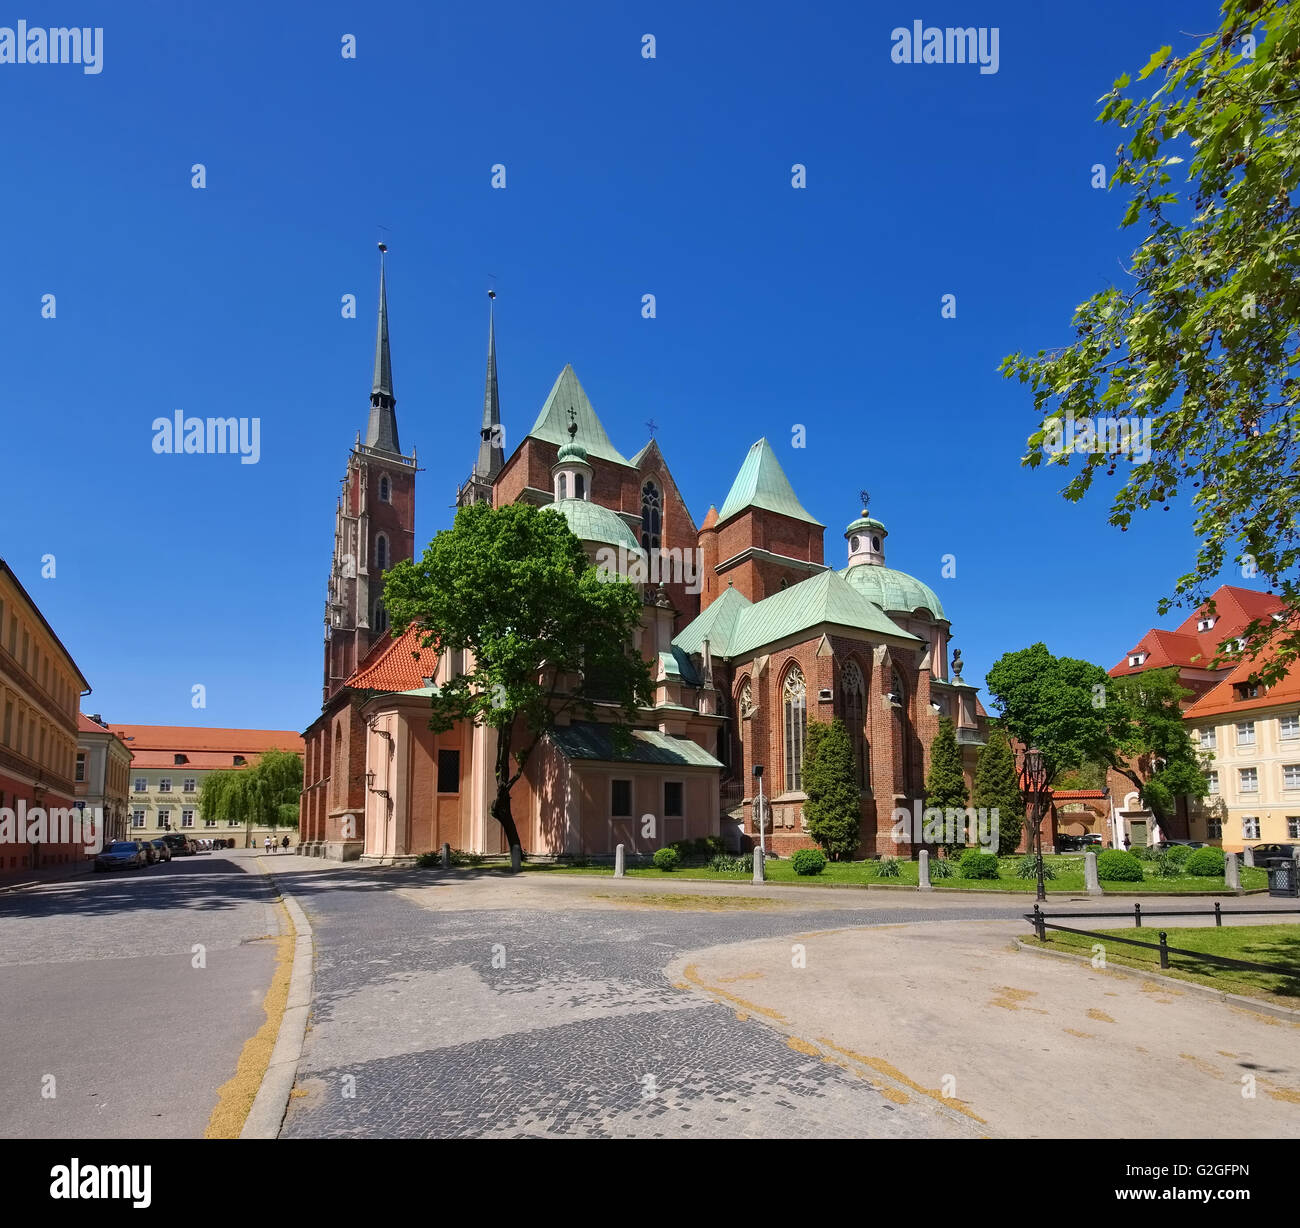 Breslauer Dom in der Stadt - Breslau the cathedral in the city - Stock Image